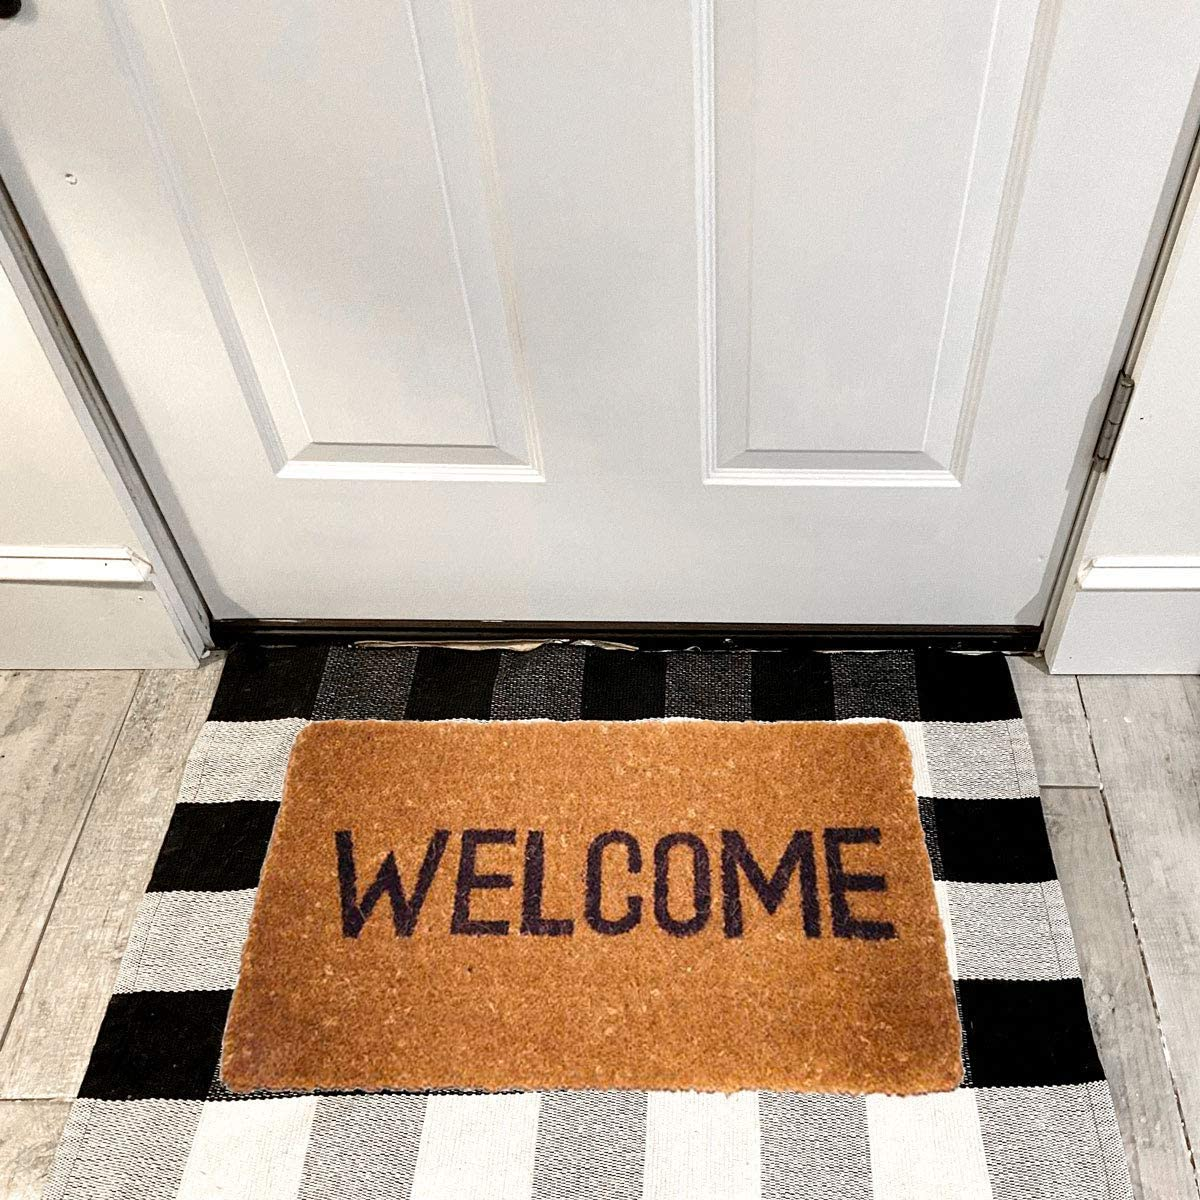 Southern Marketplace Cotton Buffalo Plaid Check Rug 35.5 x 59 Washable Woven Outdoor Rugs for Layered Door Mats Porch Kitchen Farmhouse Black and White